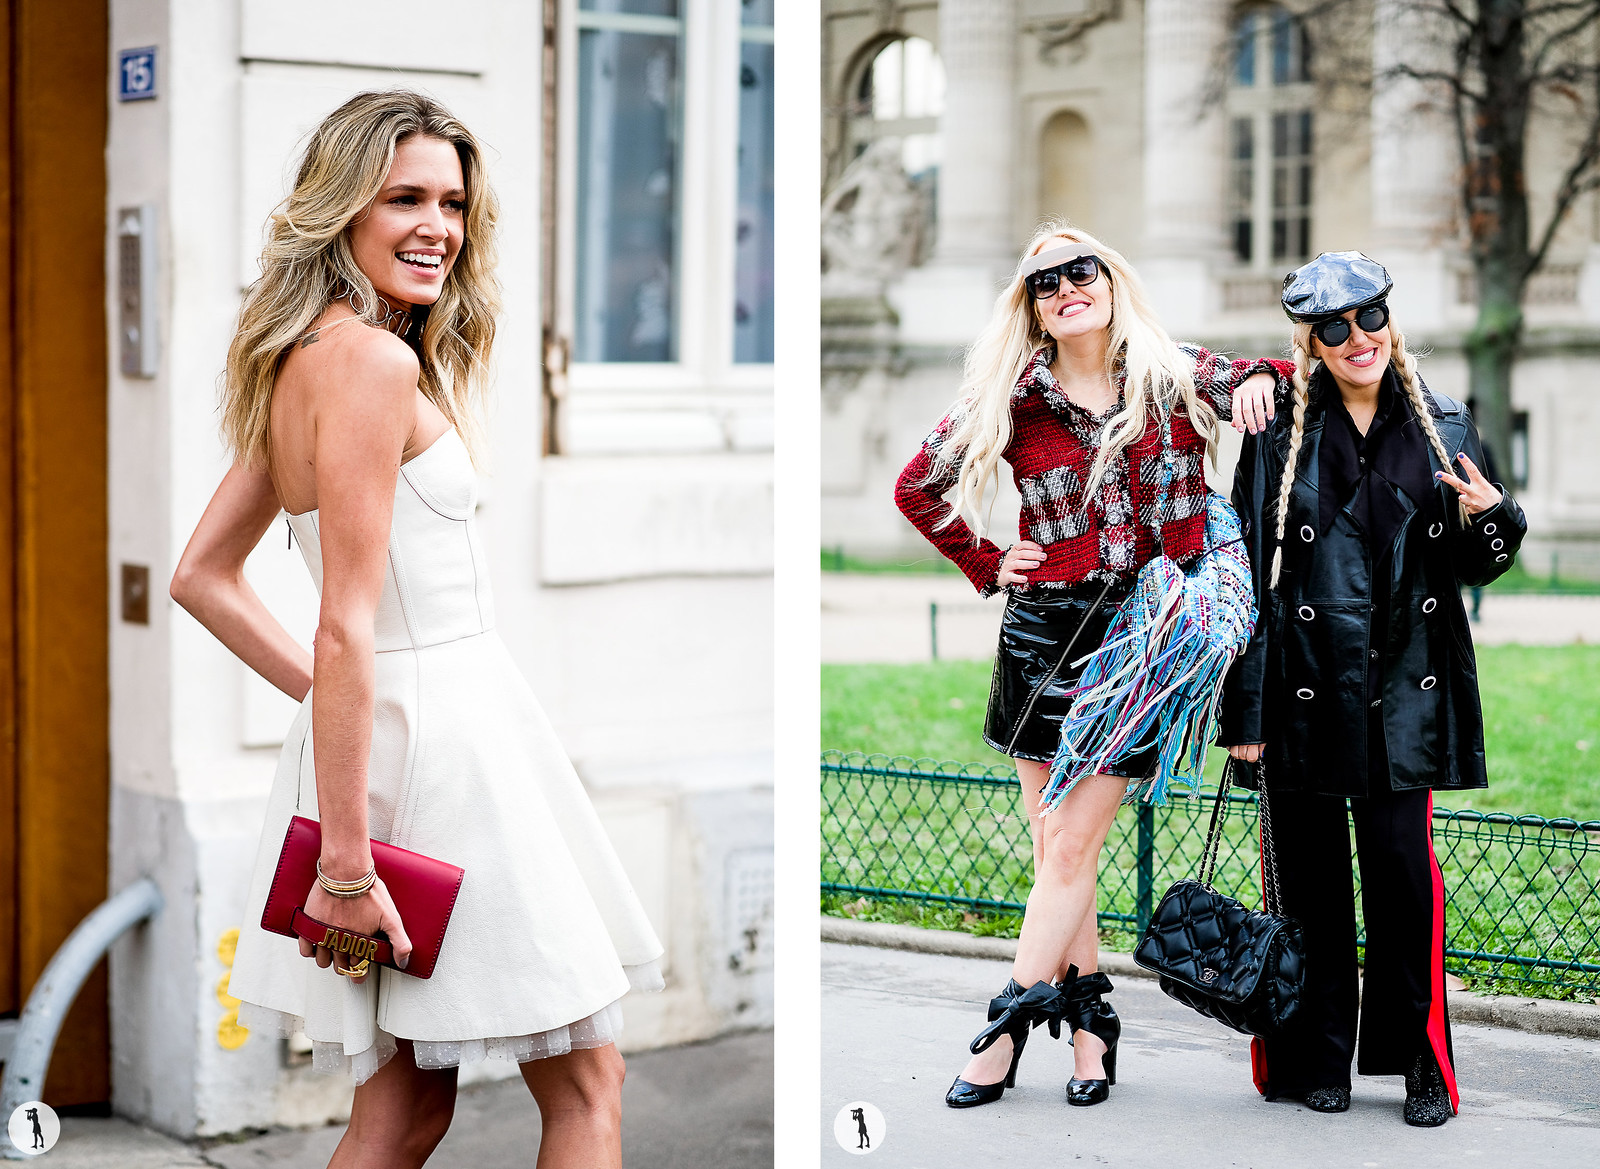 Street style - Paris fashion week FW17-18. Bloggers Helena Bordon and Beckerman sisters